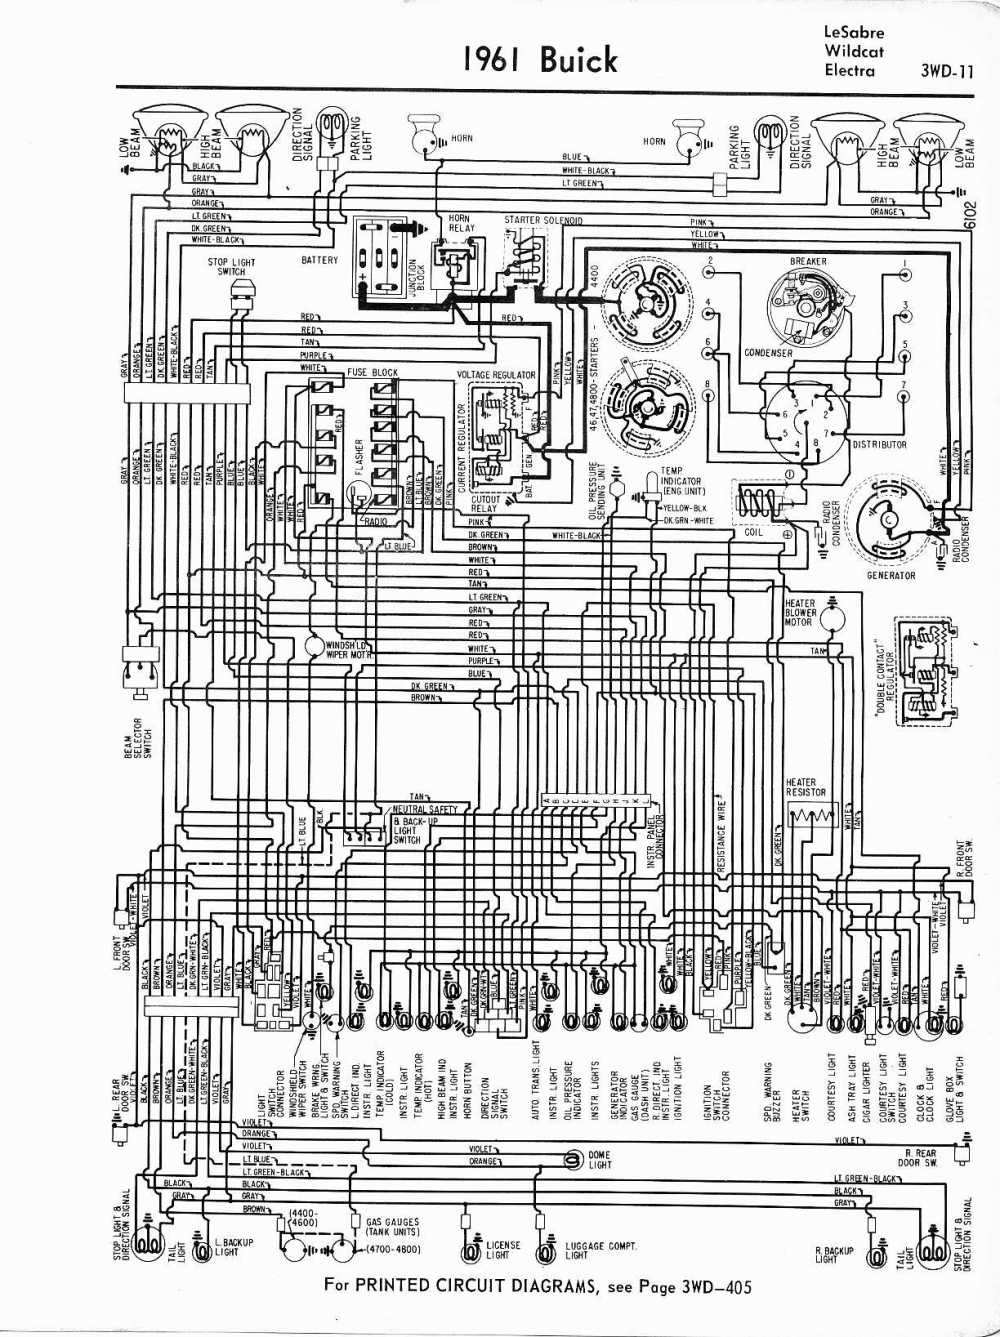 medium resolution of wiring diagram for buick lesabre wiring diagram inside 2000 buick lesabre fuel pump wiring diagram 2000 buick lesabre wiring diagram